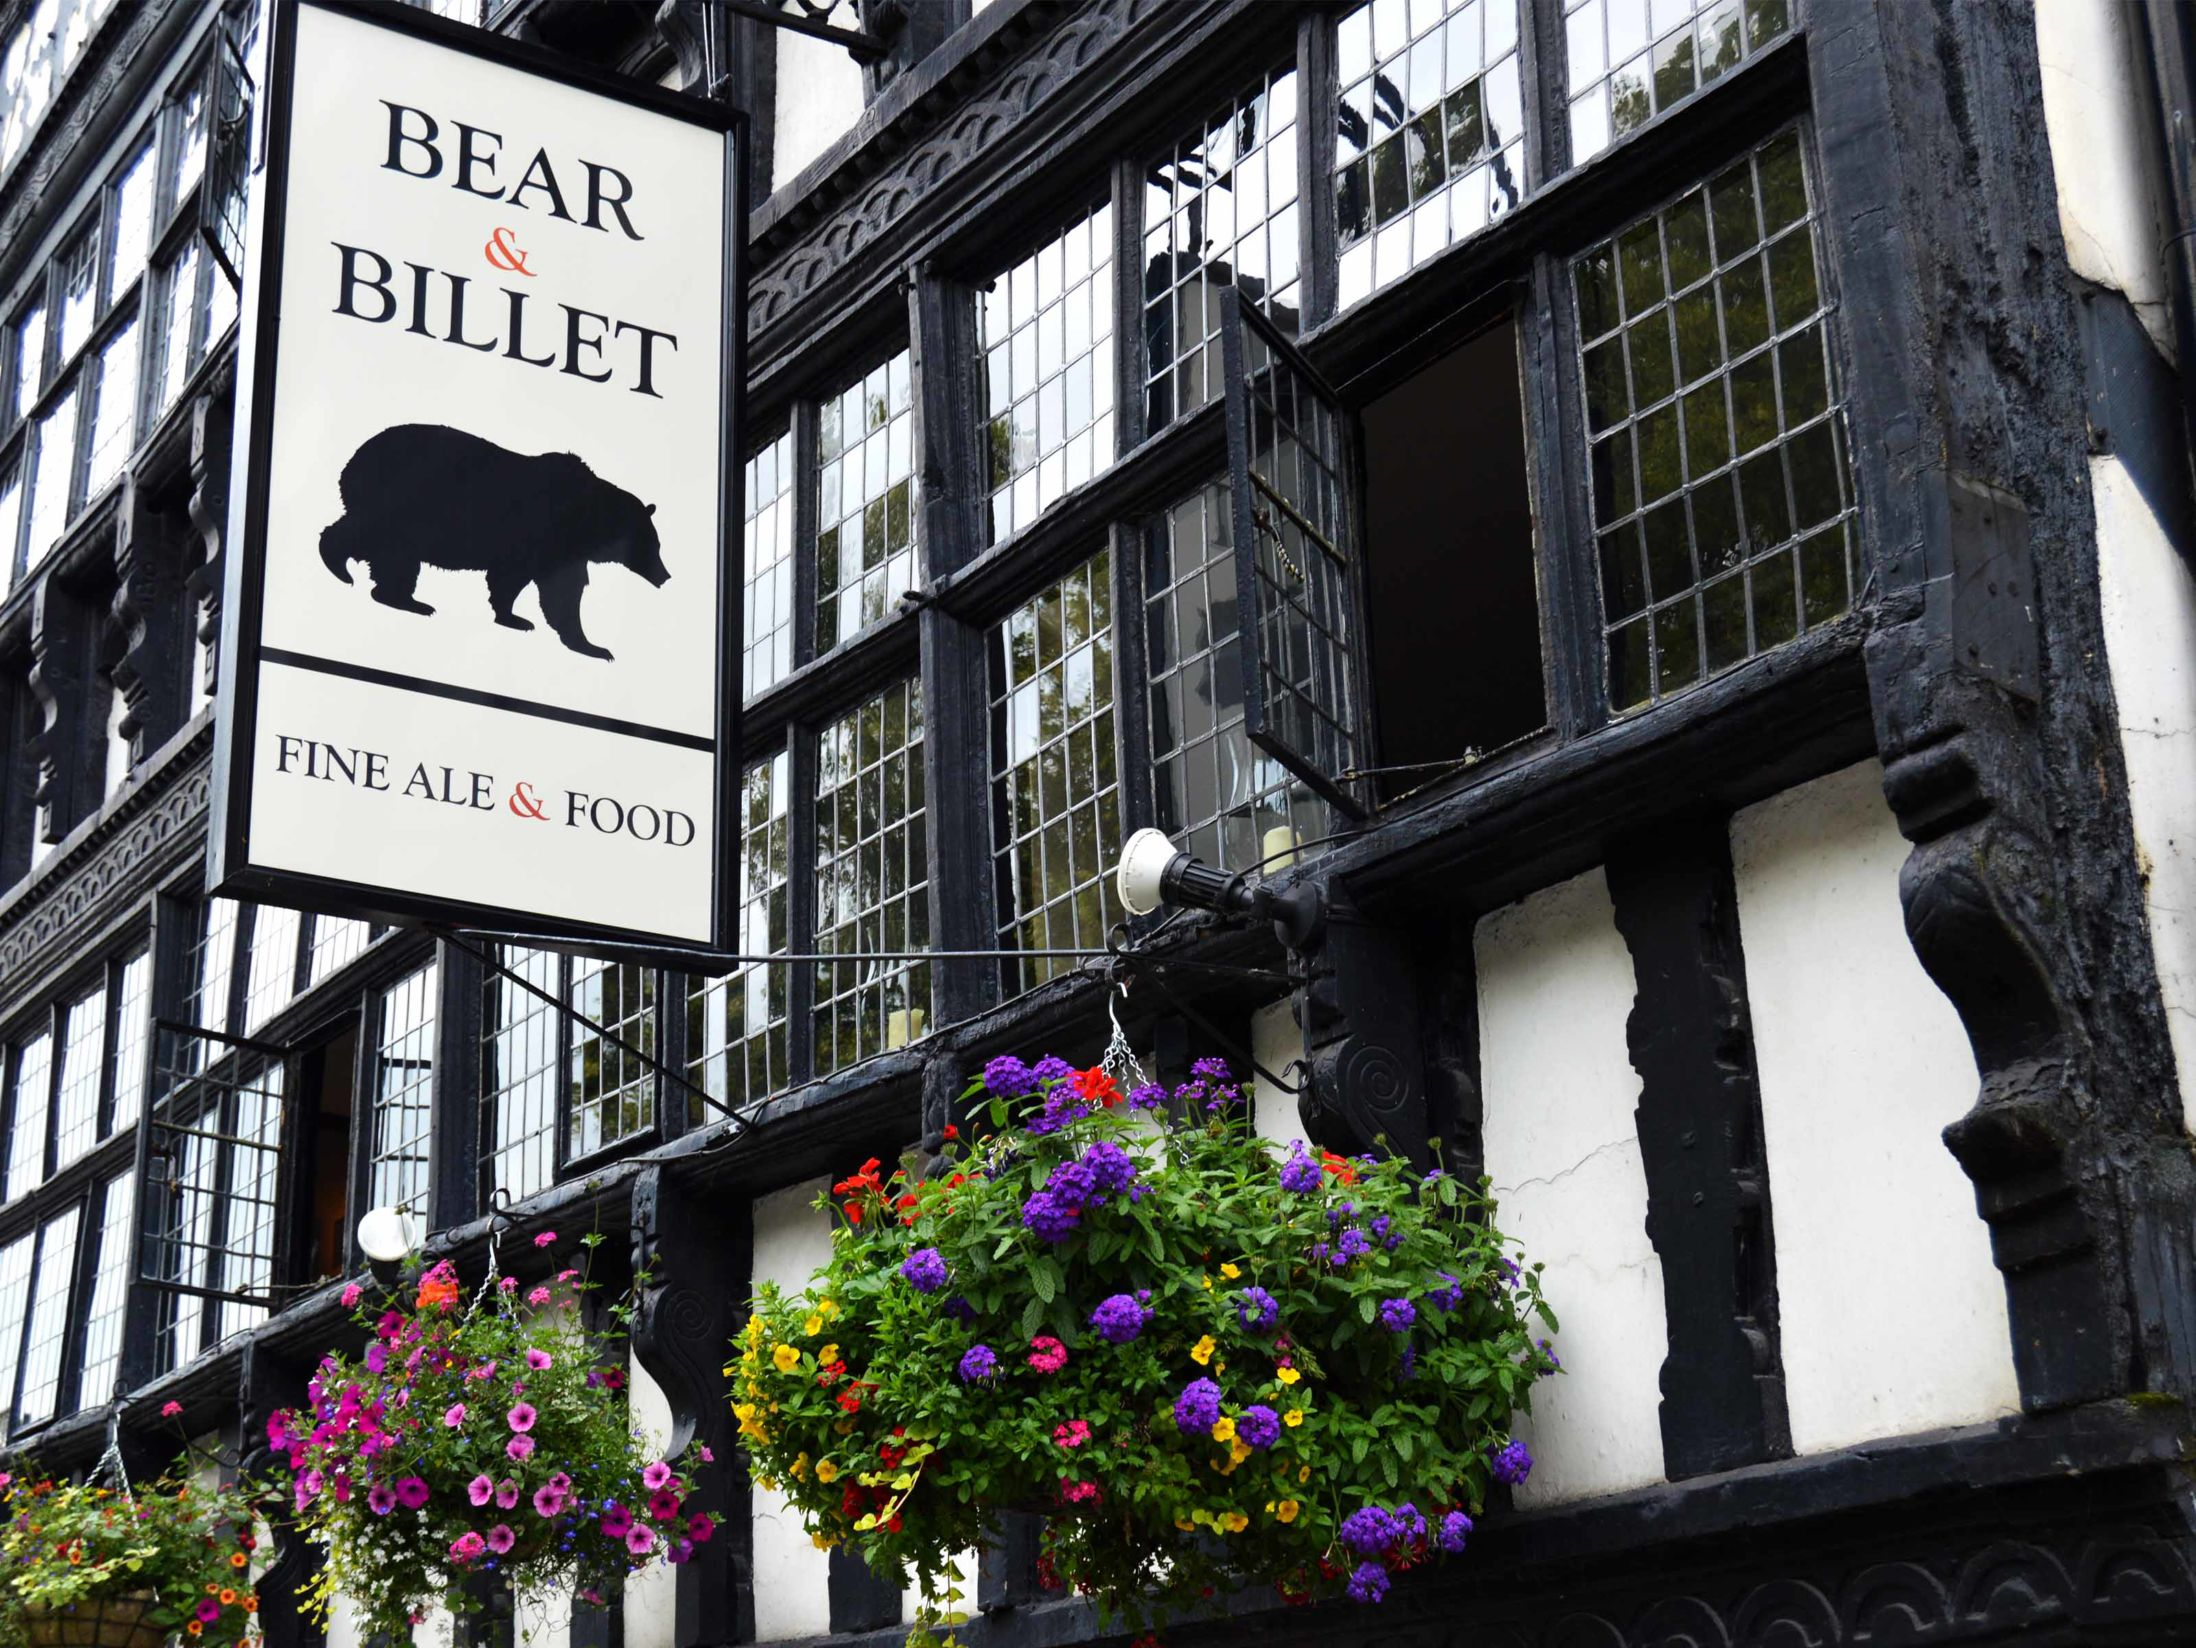 Bear & Billet - Best Bars in Chester